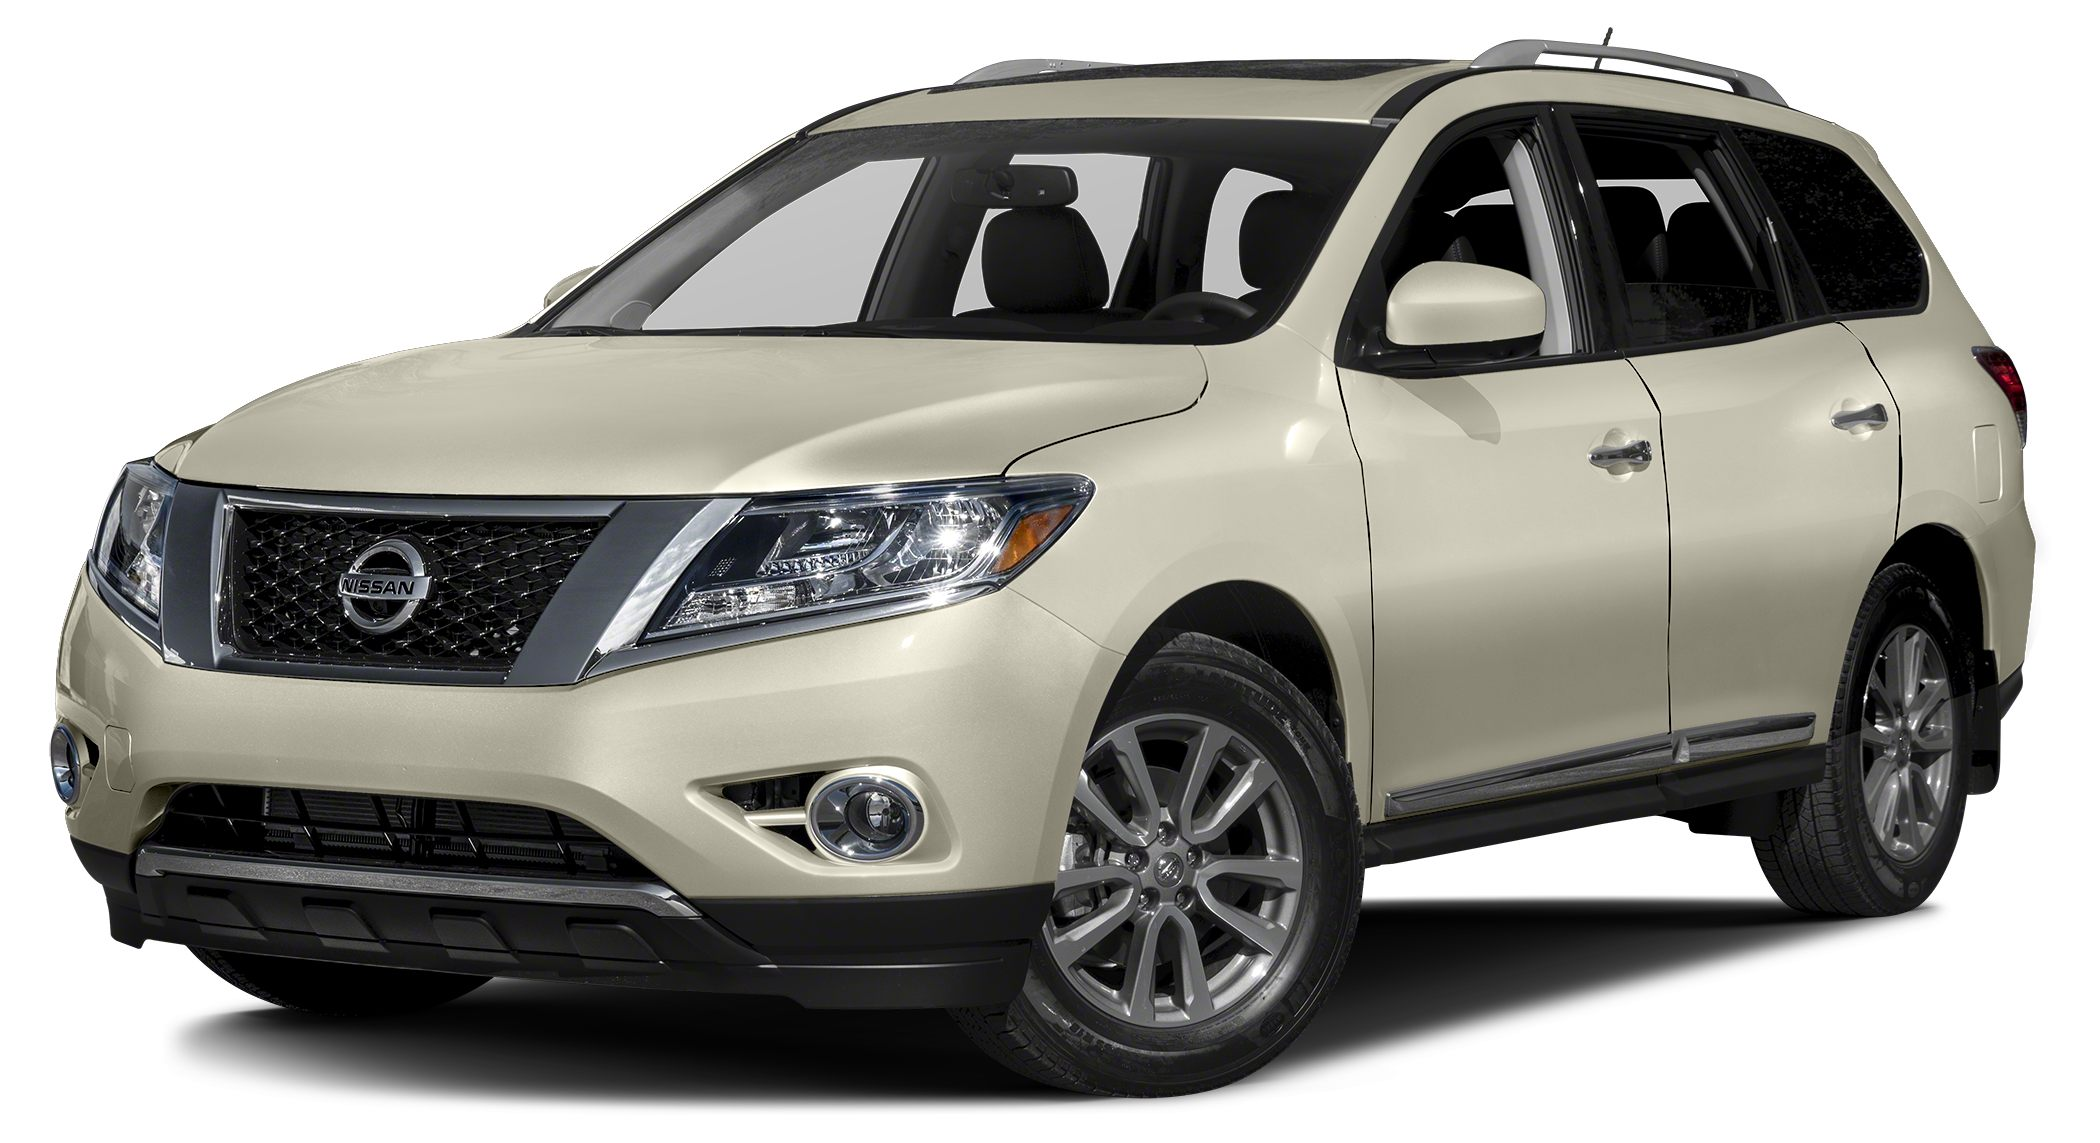 2016 Nissan Pathfinder SL Miles 10Color Pearl White Stock 16P156 VIN 5N1AR2MN8GC650131